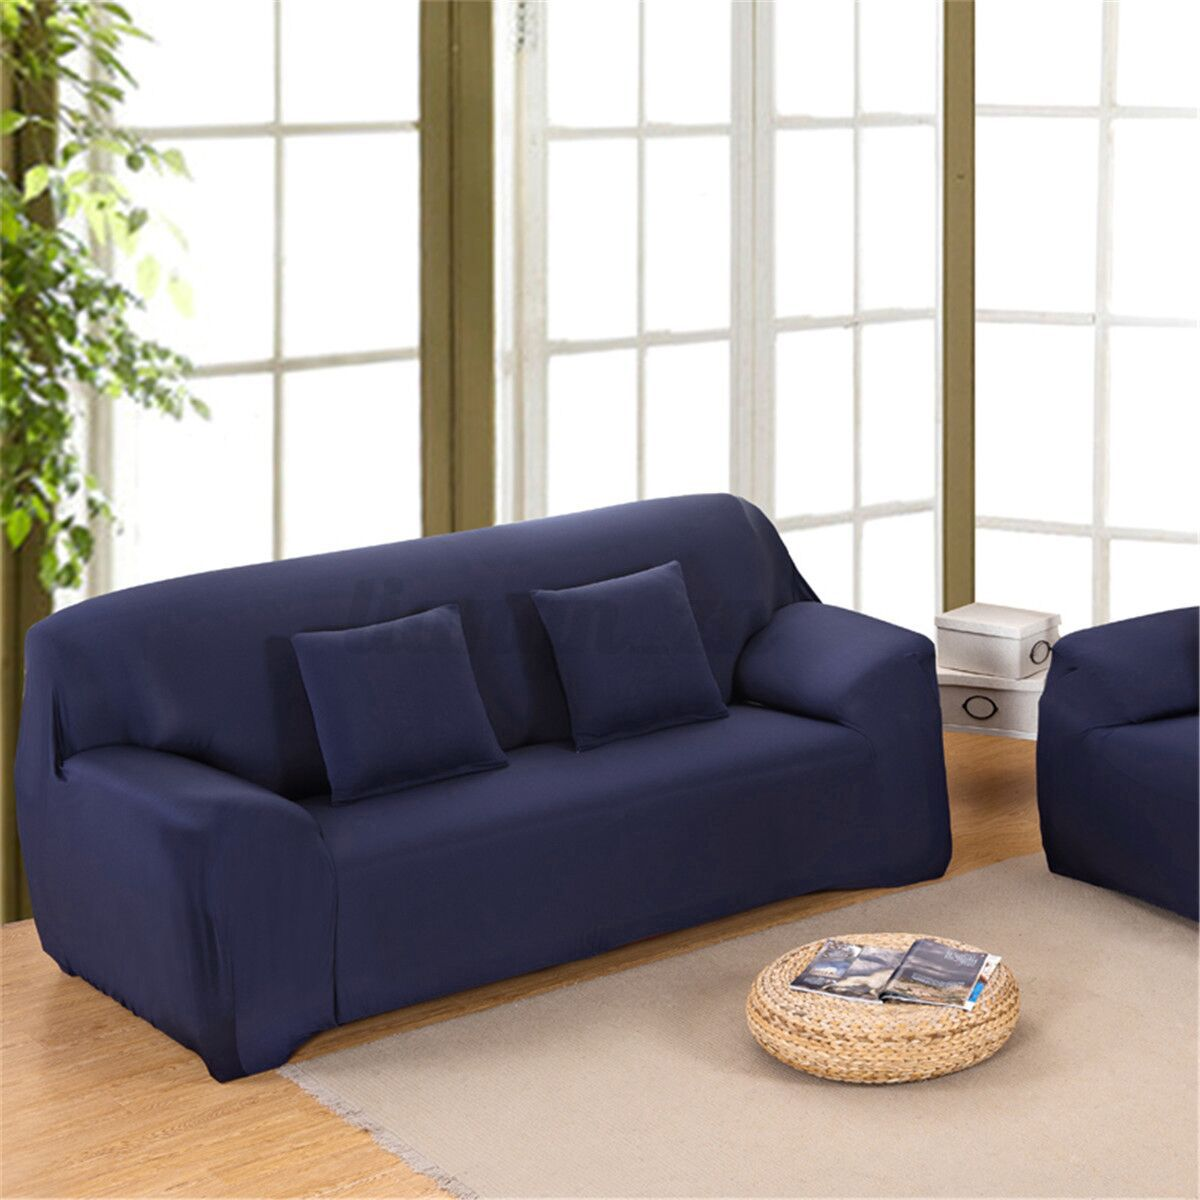 1 2 3 4 Seater L Shape Stretch Chair Loveseat Sofa Couch Protect Cover Slipcover Ebay